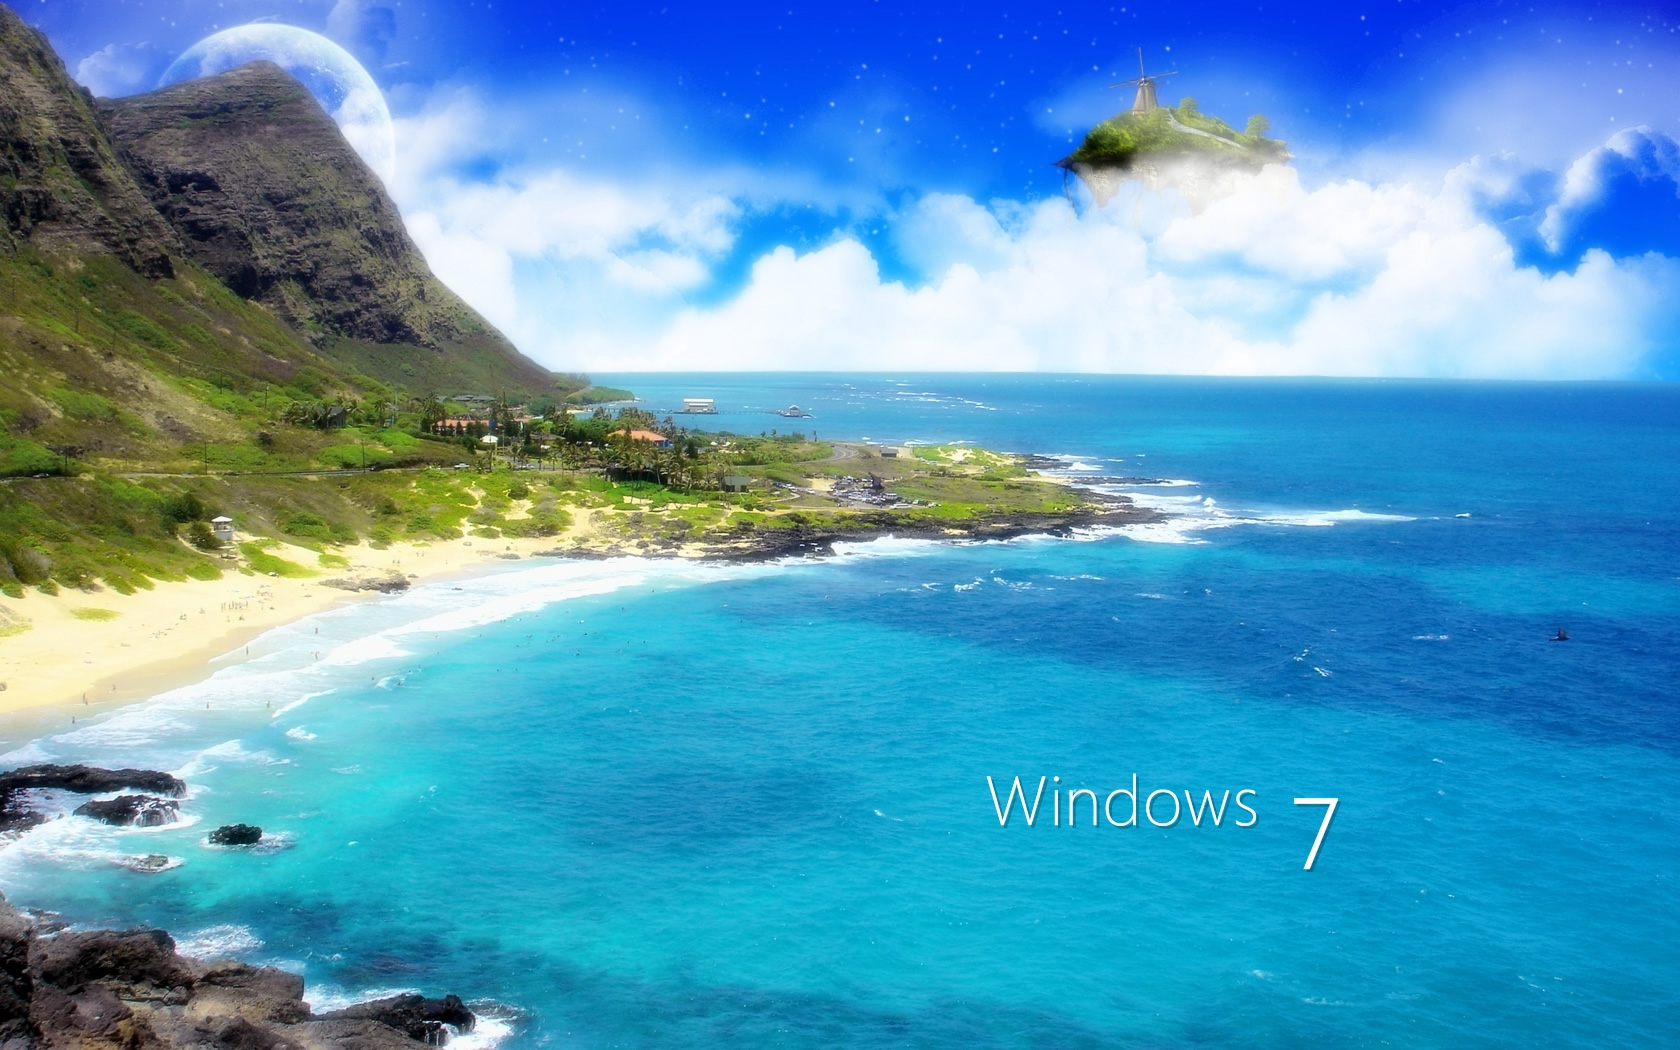 Scenery wallpaper fond d 39 cran paysage windows 7 for Fond wallpaper